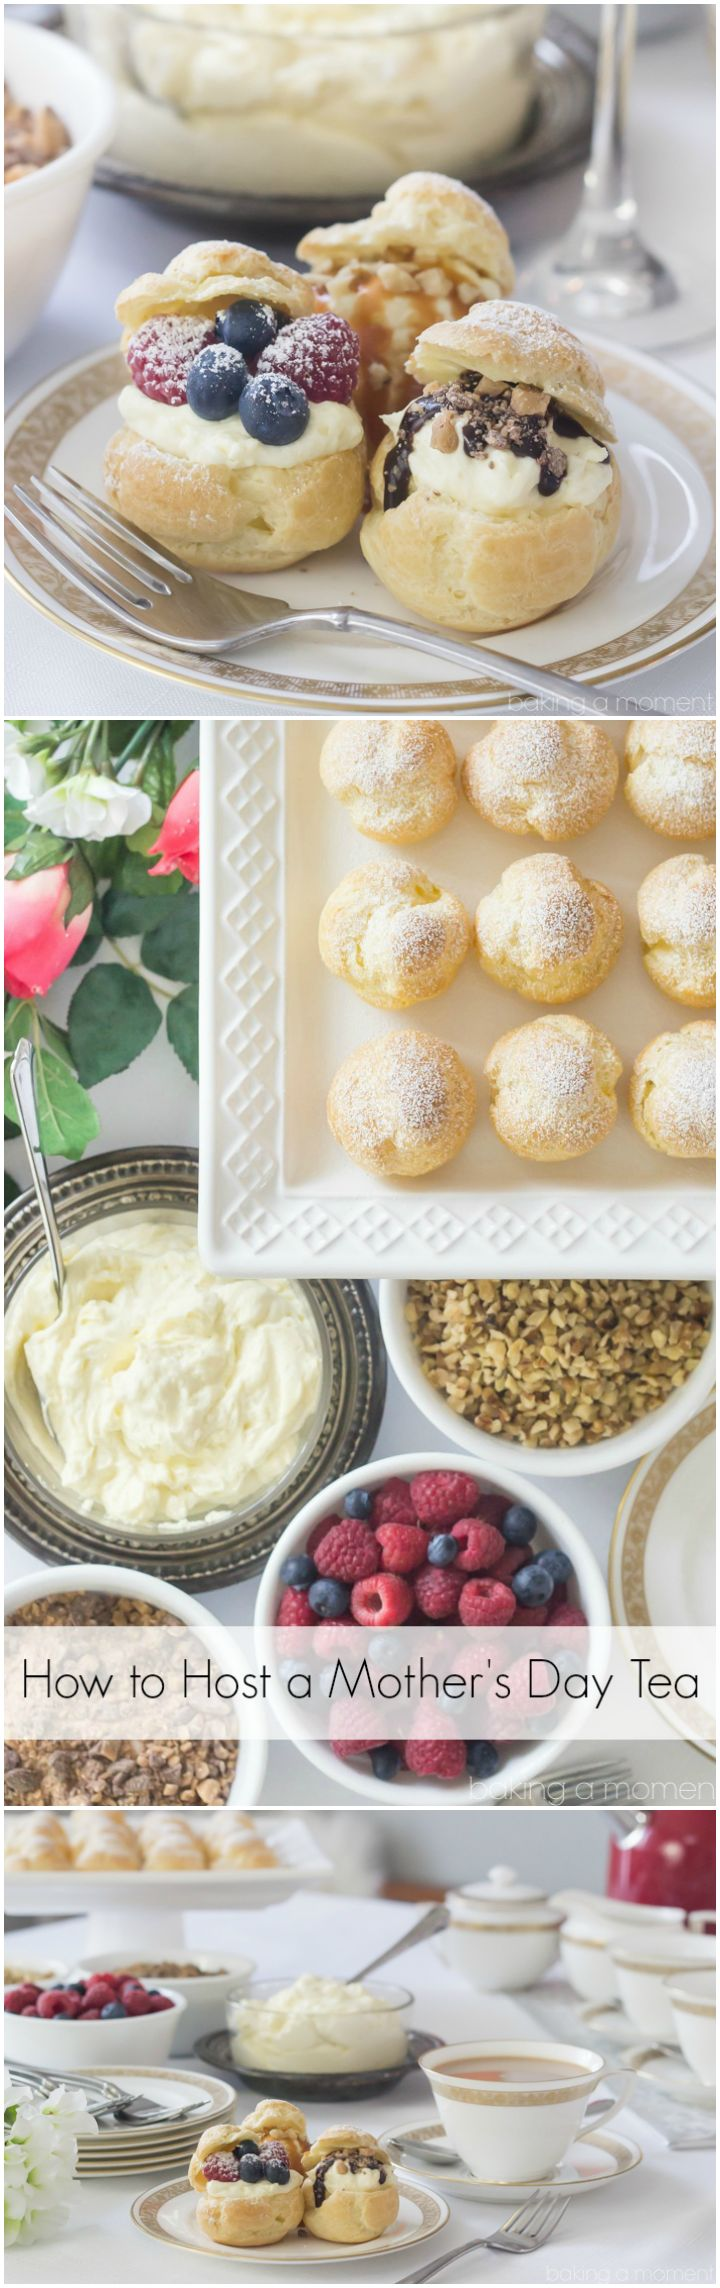 How to Host a Mother's Day Tea with a DIY Cream Puff Bar ~ http://bakingamoment.com @kitchenaidusa